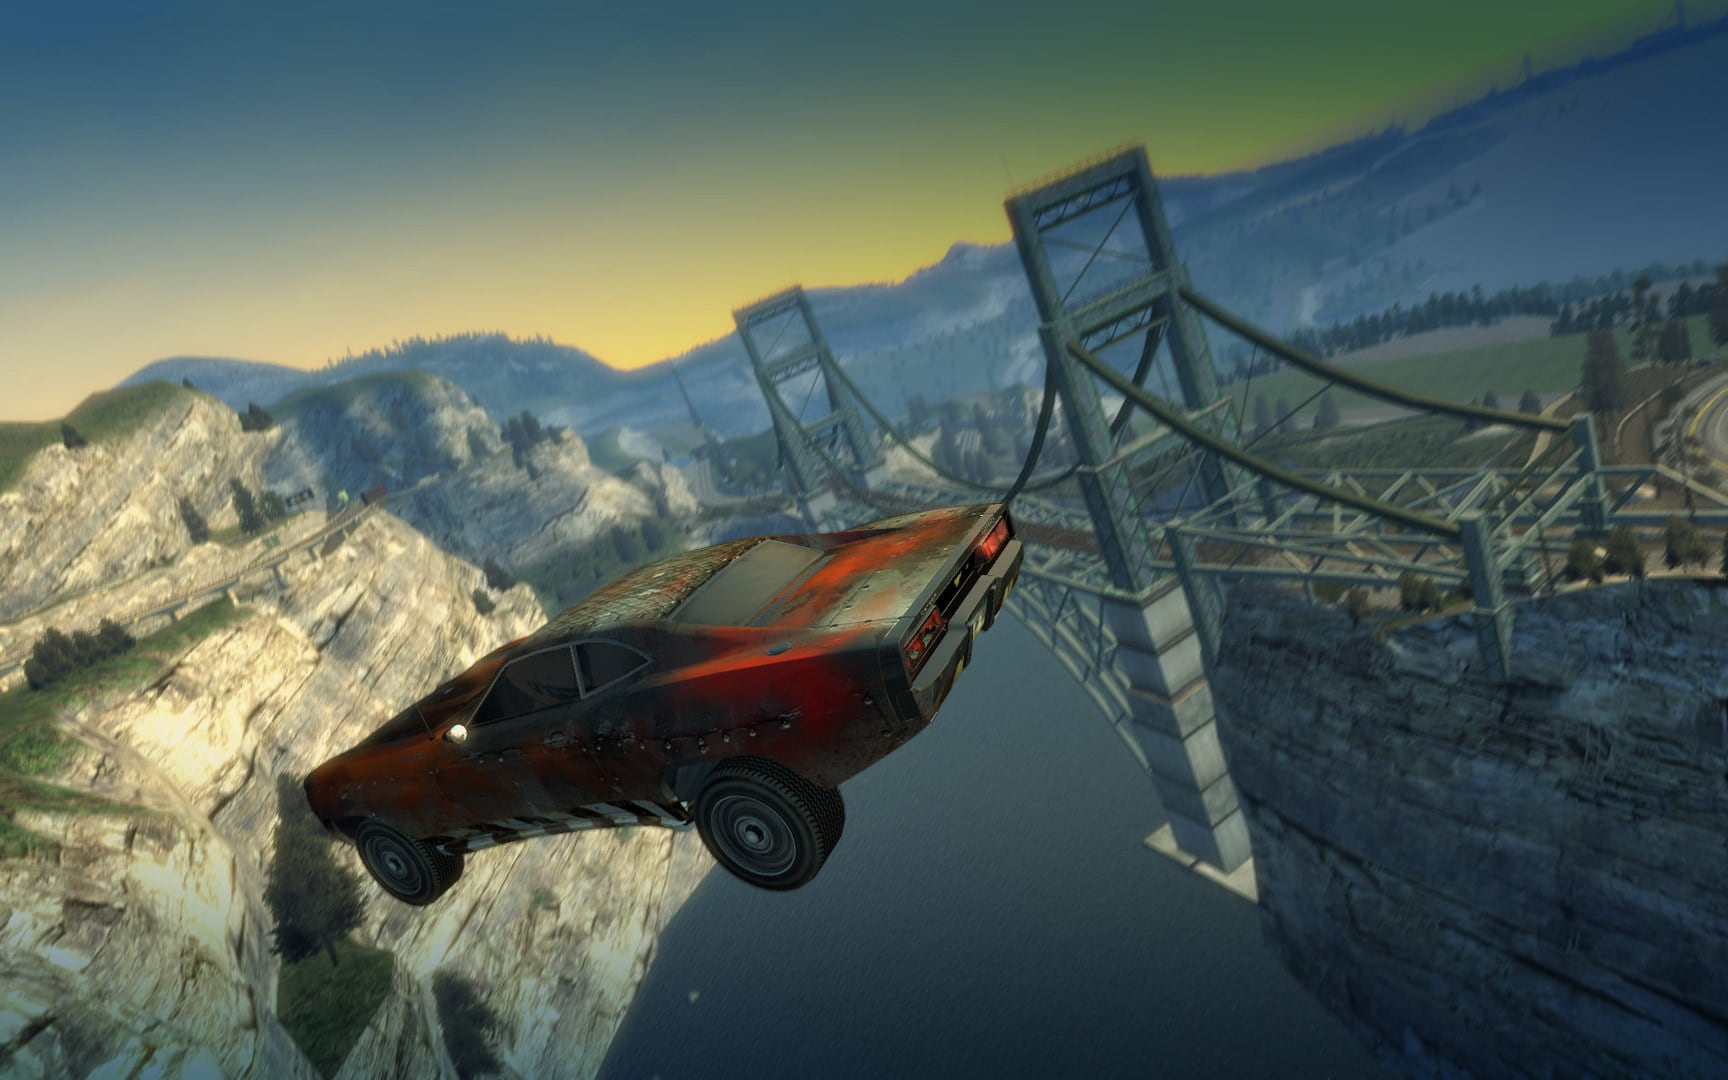 Burnout Paradise: The Ultimate Box Steam Key GLOBAL - 3